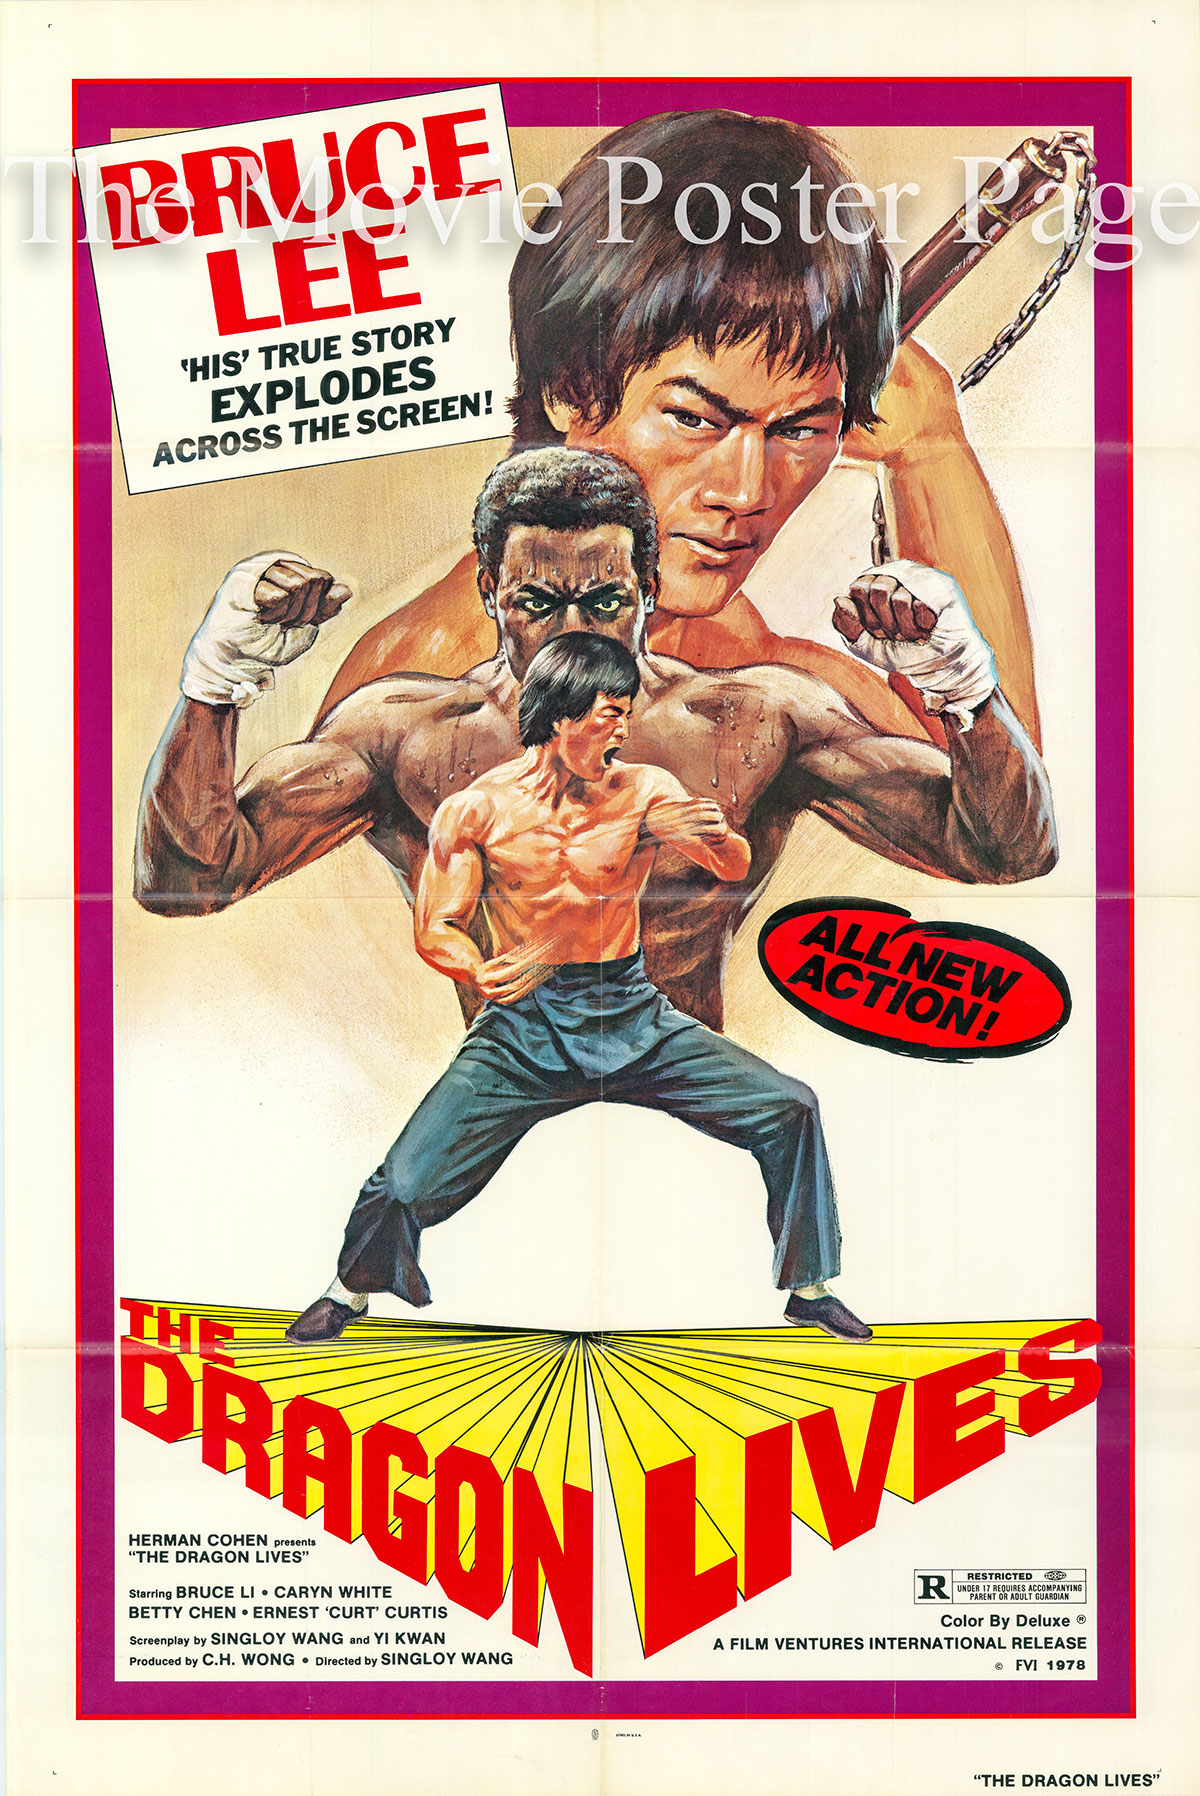 Pictured is a US one-sheet poster for the 1978 Singloy Wang film The Dragon Lives starring Bruce Li